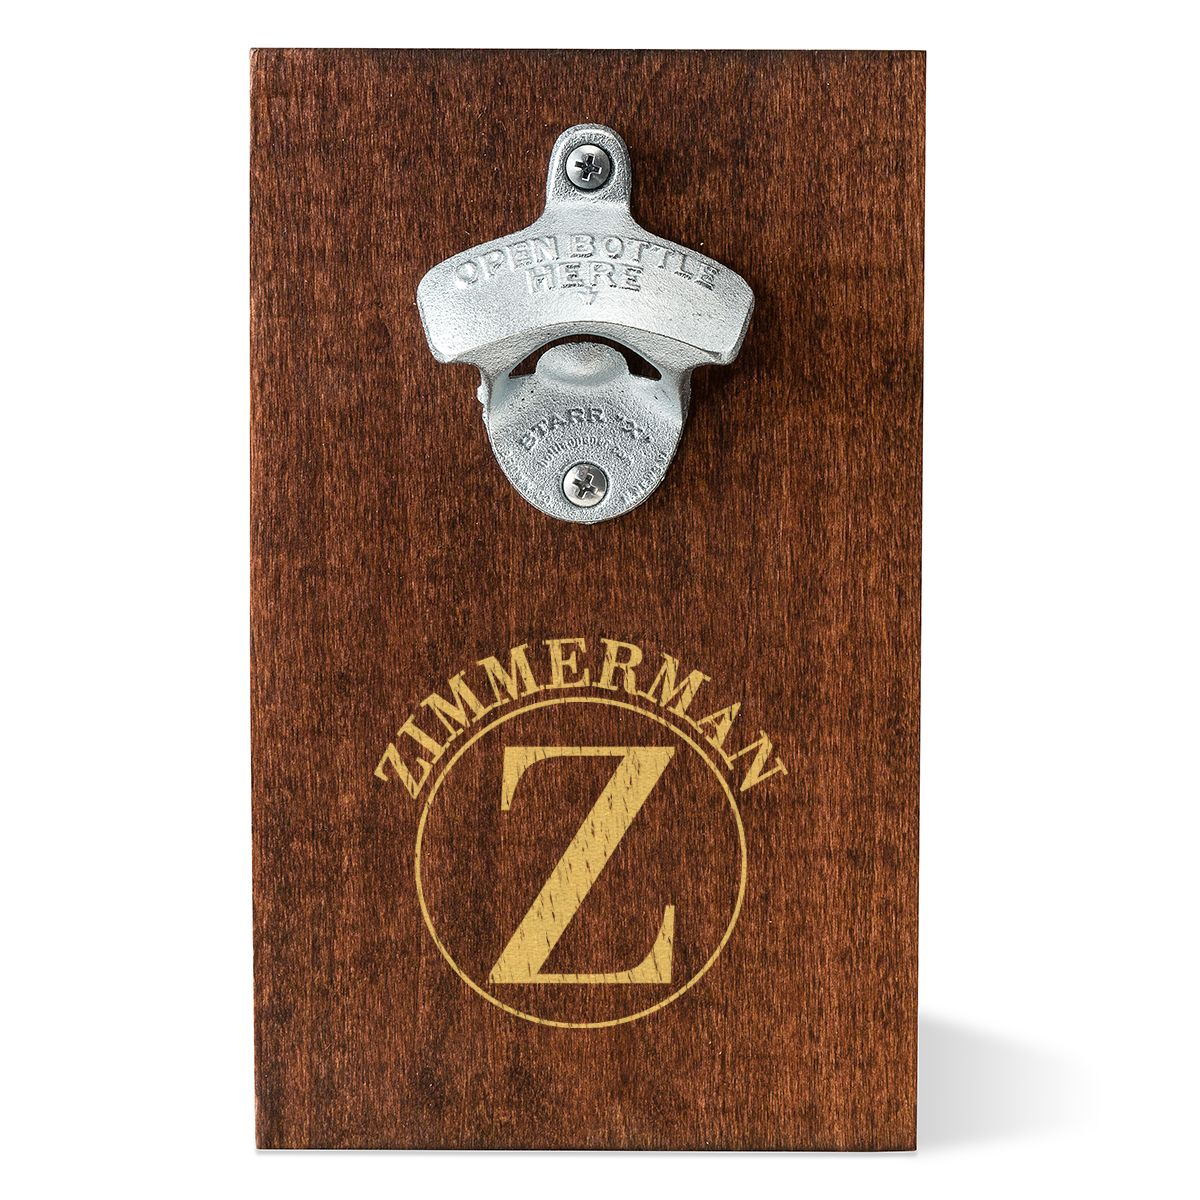 PERSONALIZED WOOD PLANK WALL MOUNTED BOTTLE OPENER